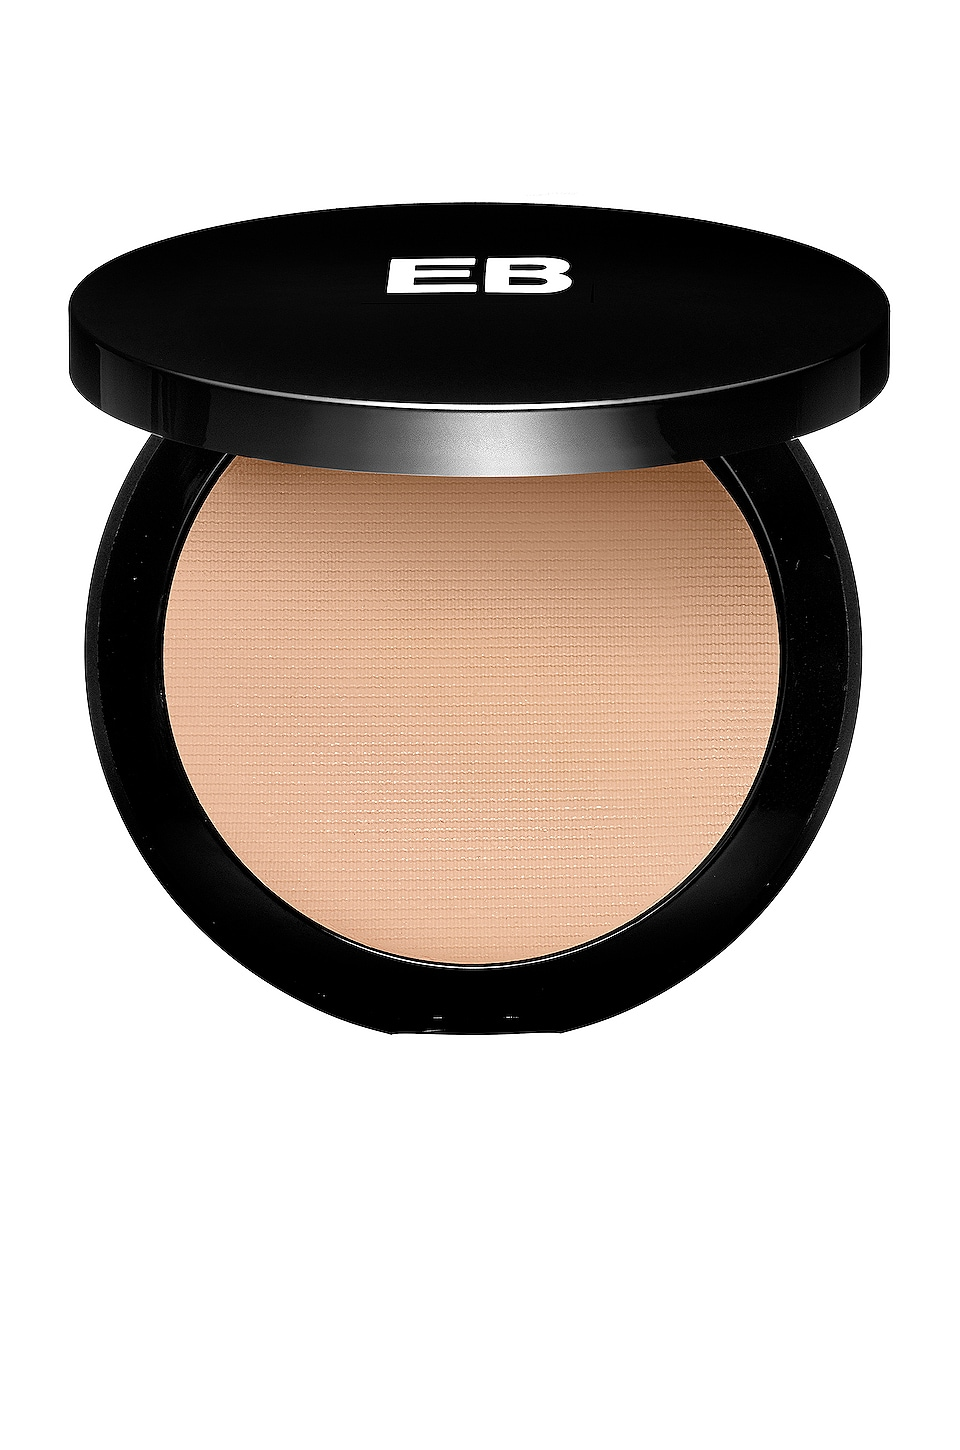 Edward Bess Flawless Illusion Compact Foundation in Medium